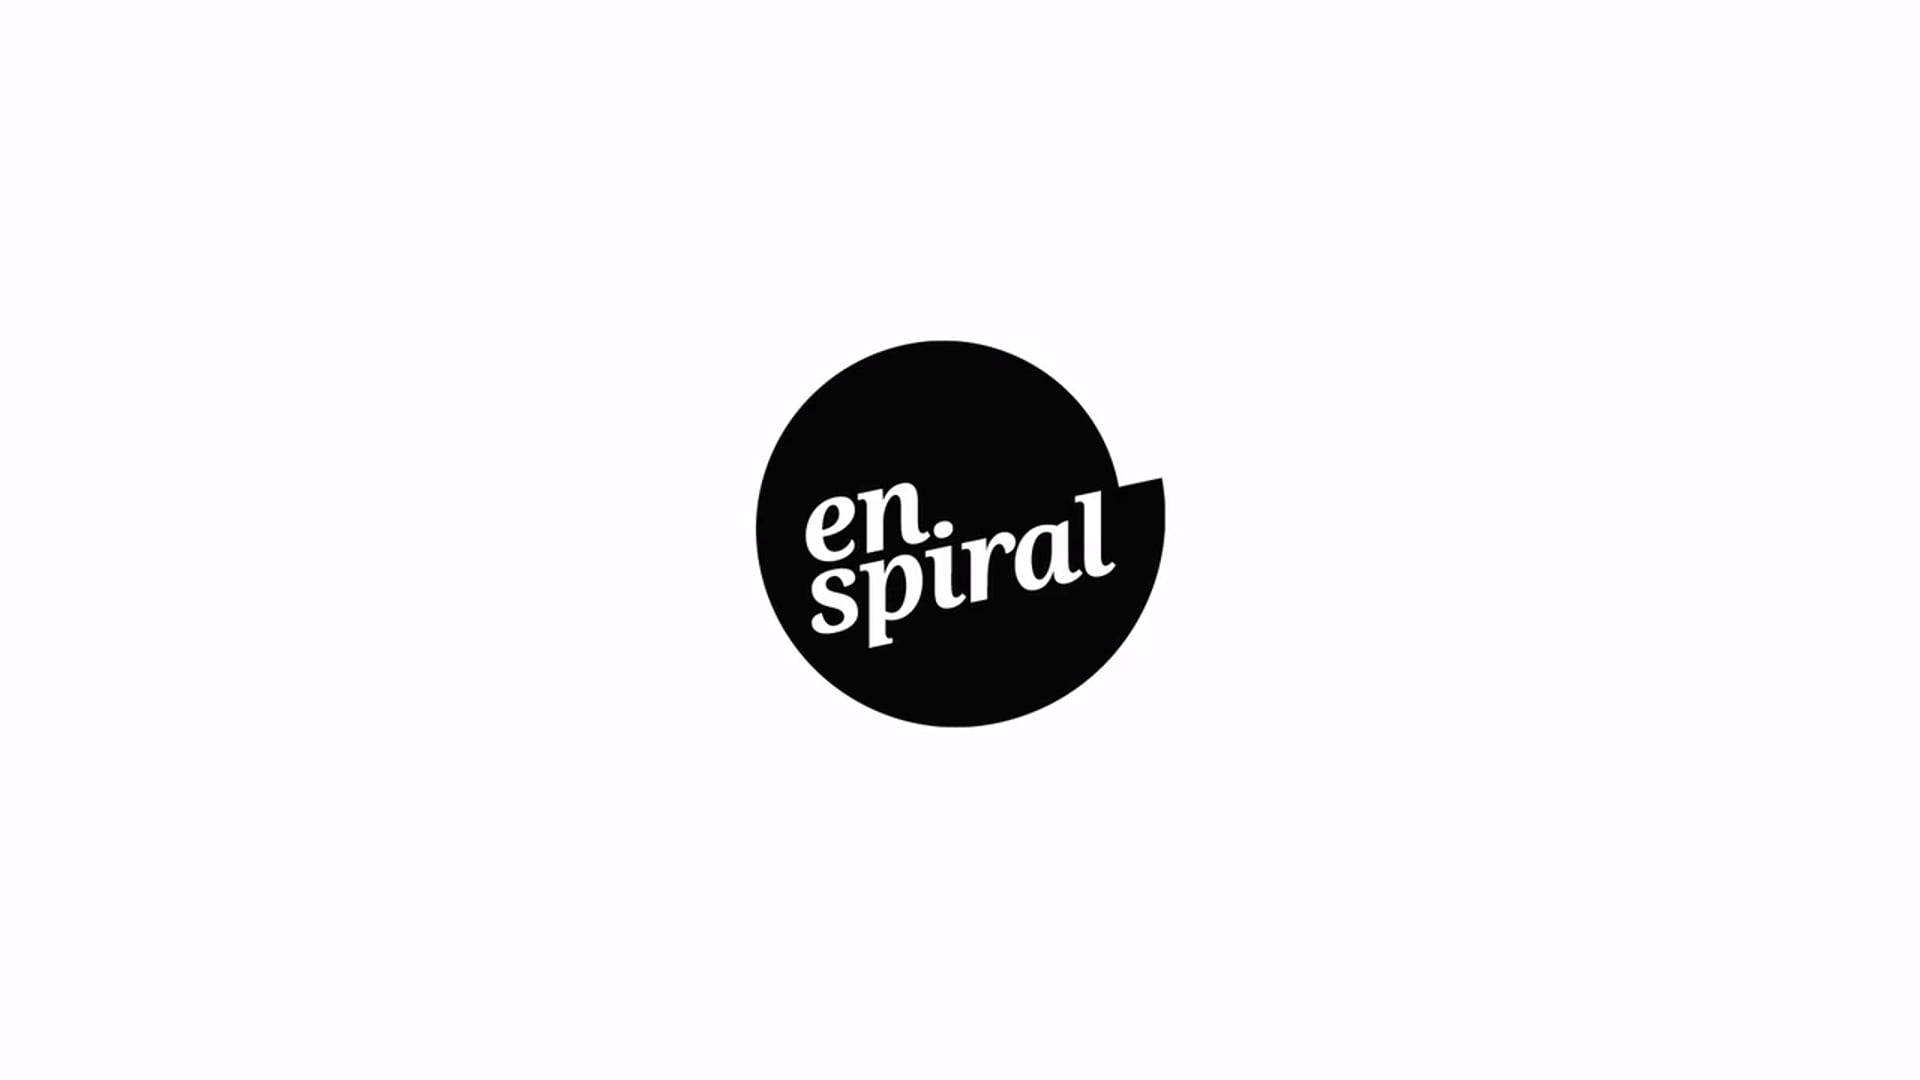 What is Enspiral?